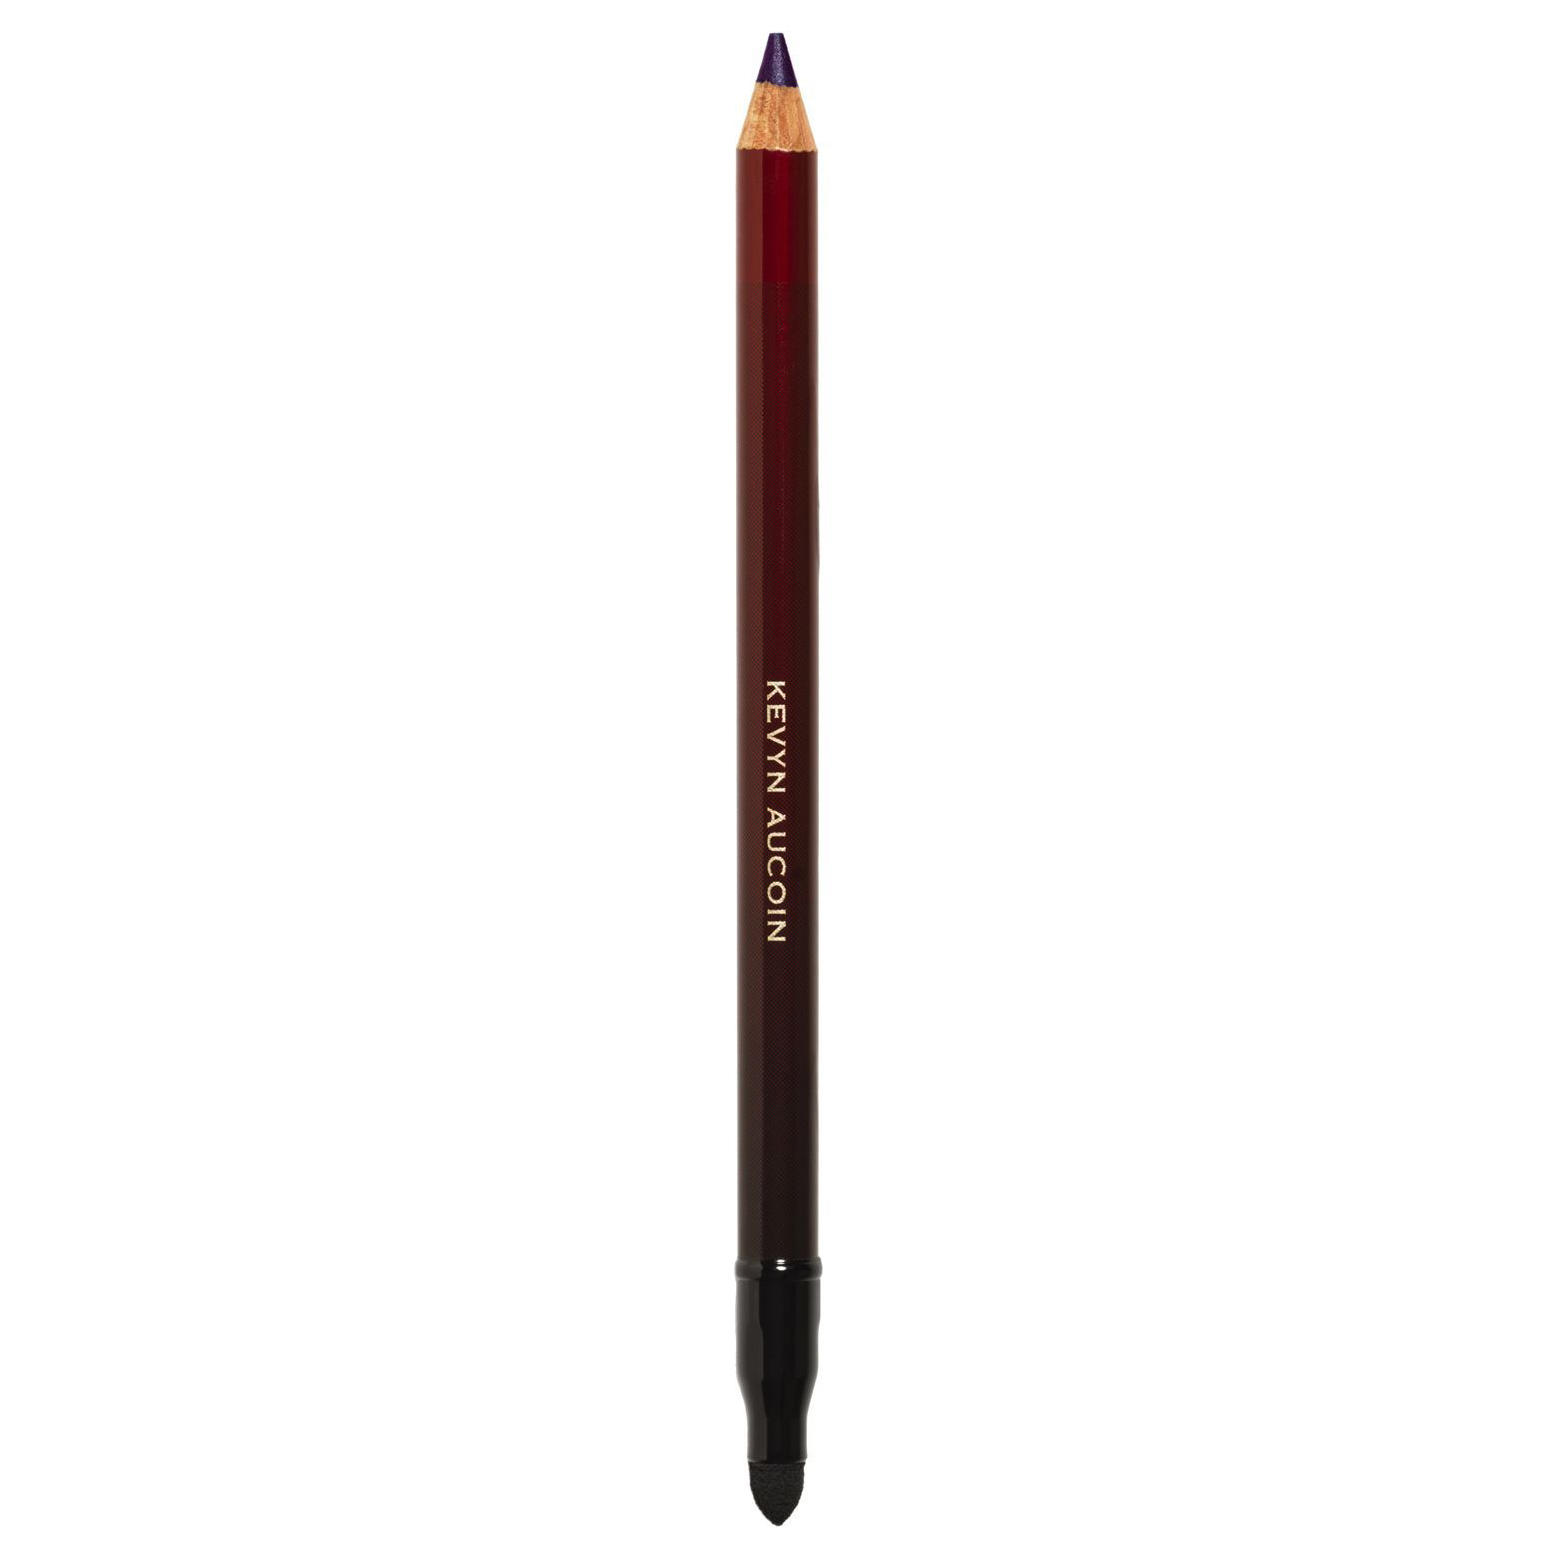 Kevyn Aucoin The Eye Pencil Defining Purple